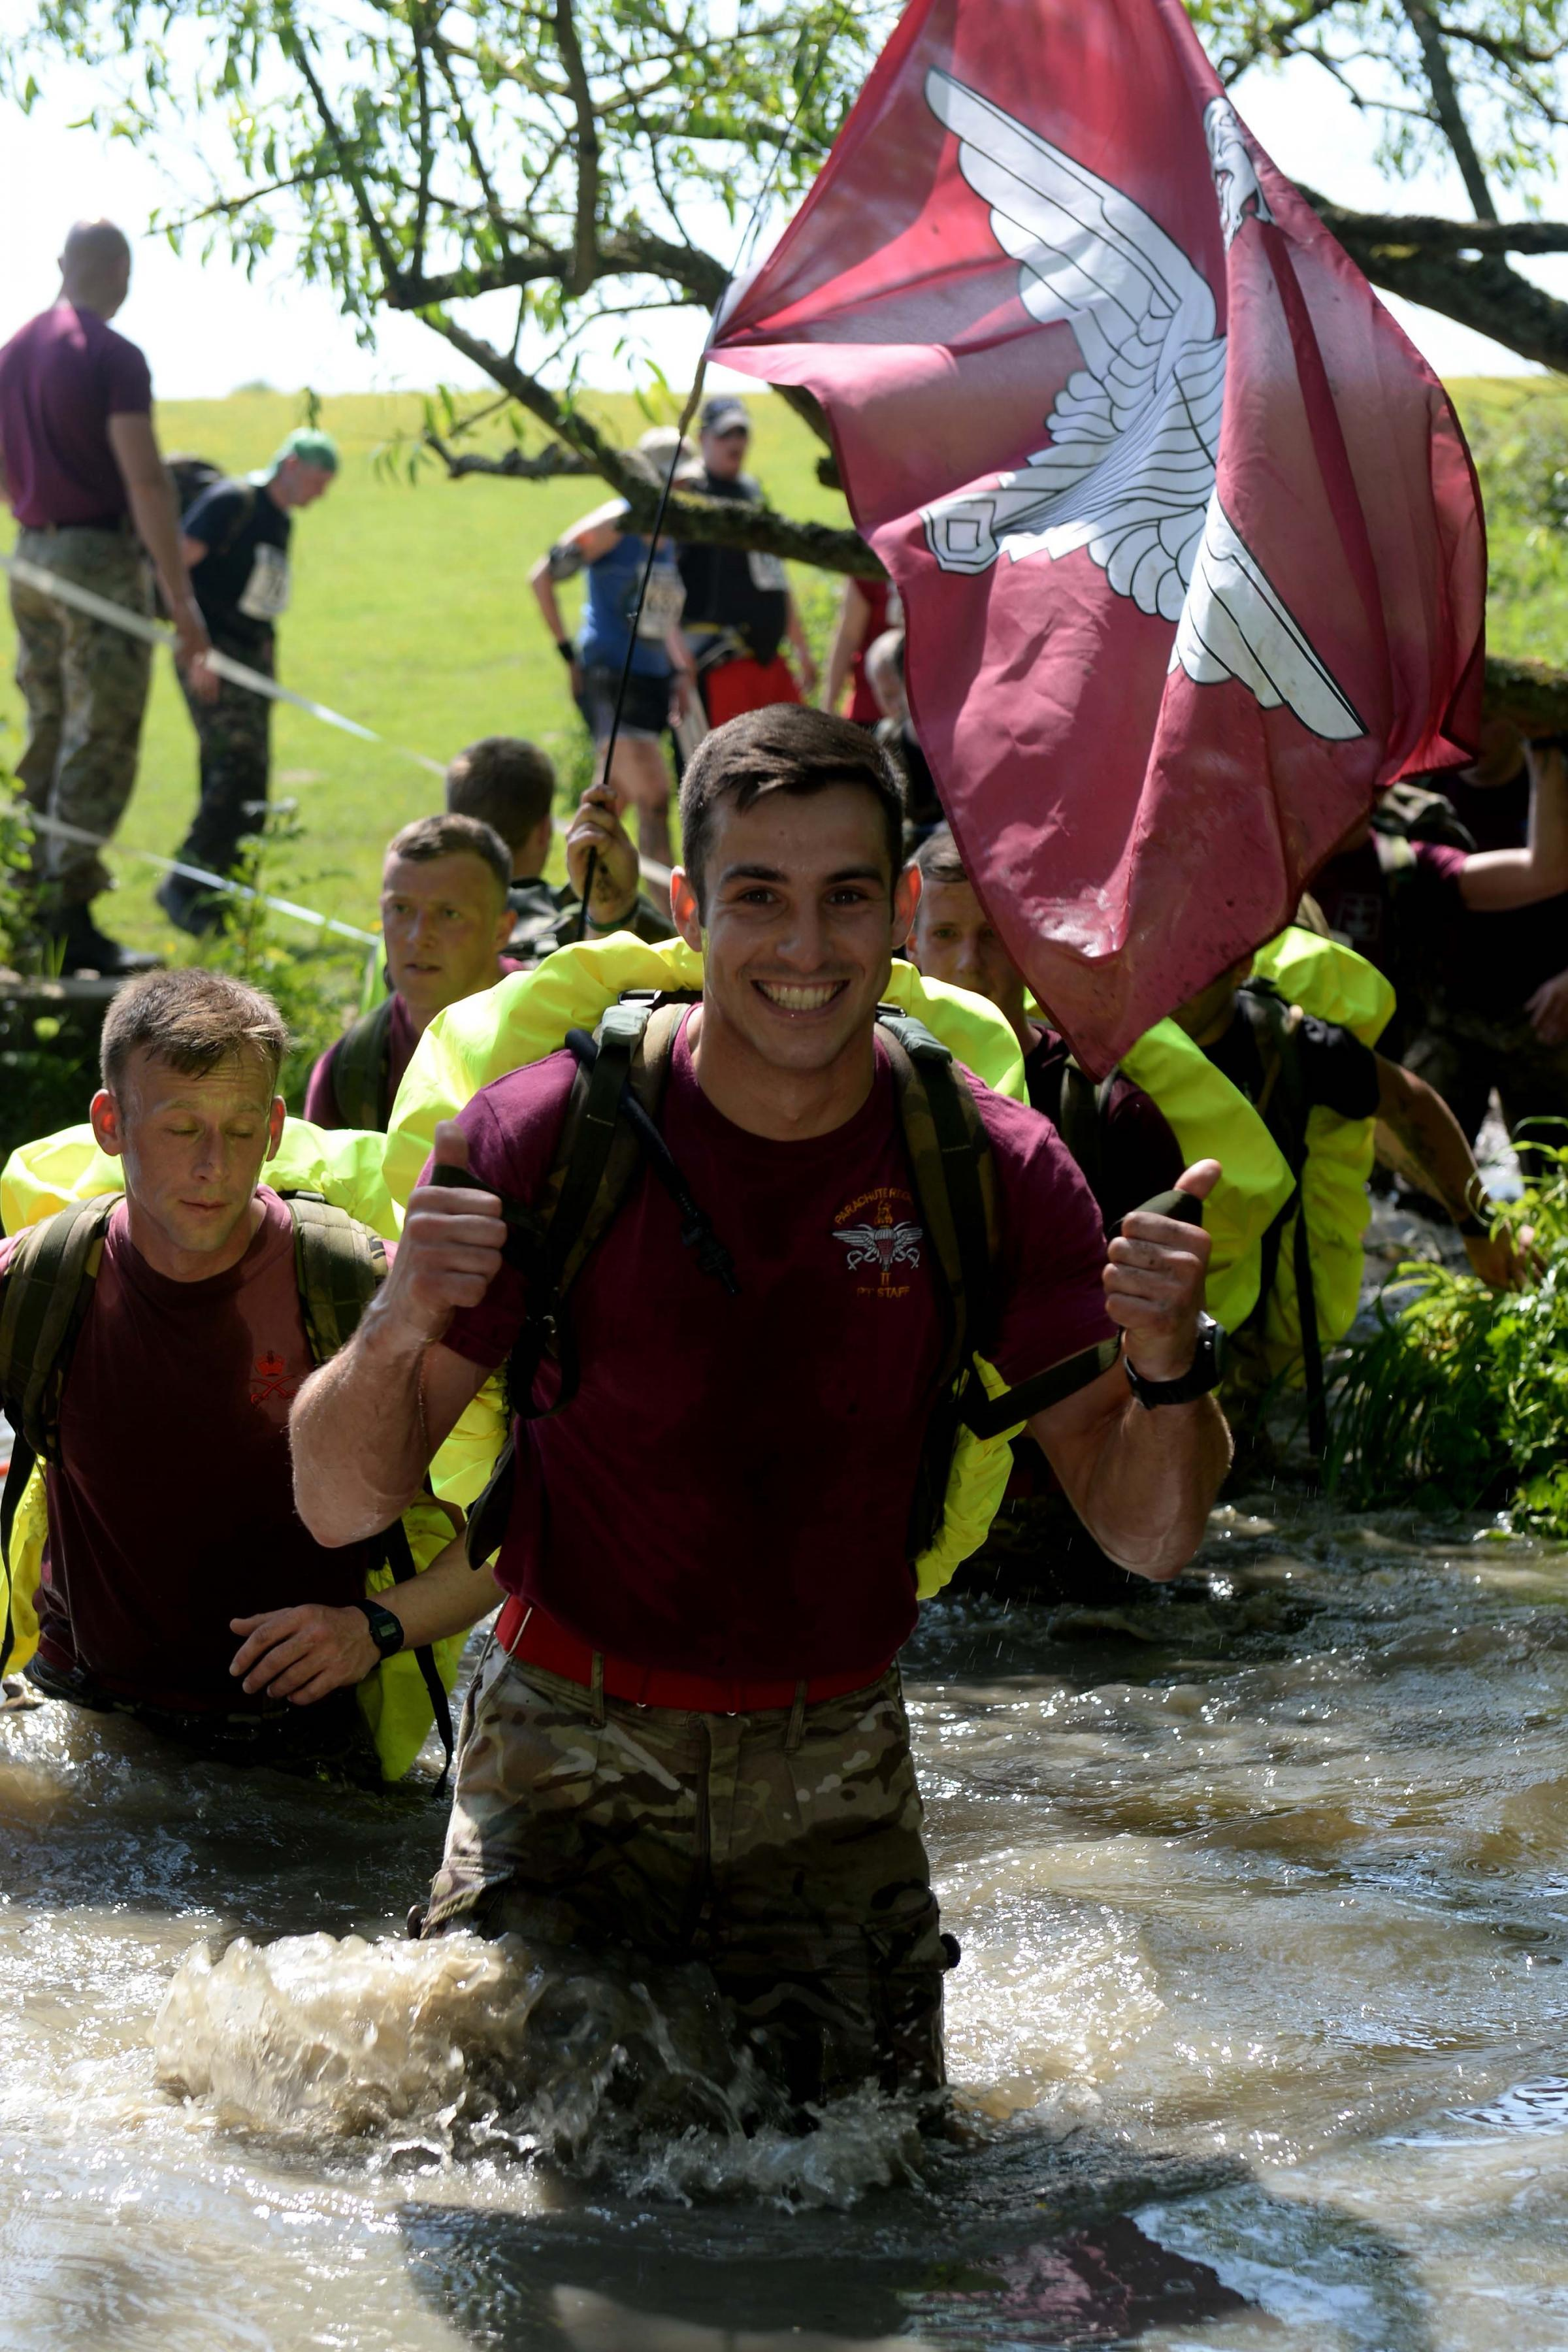 Hundreds of runners take part in Paras' 10 run